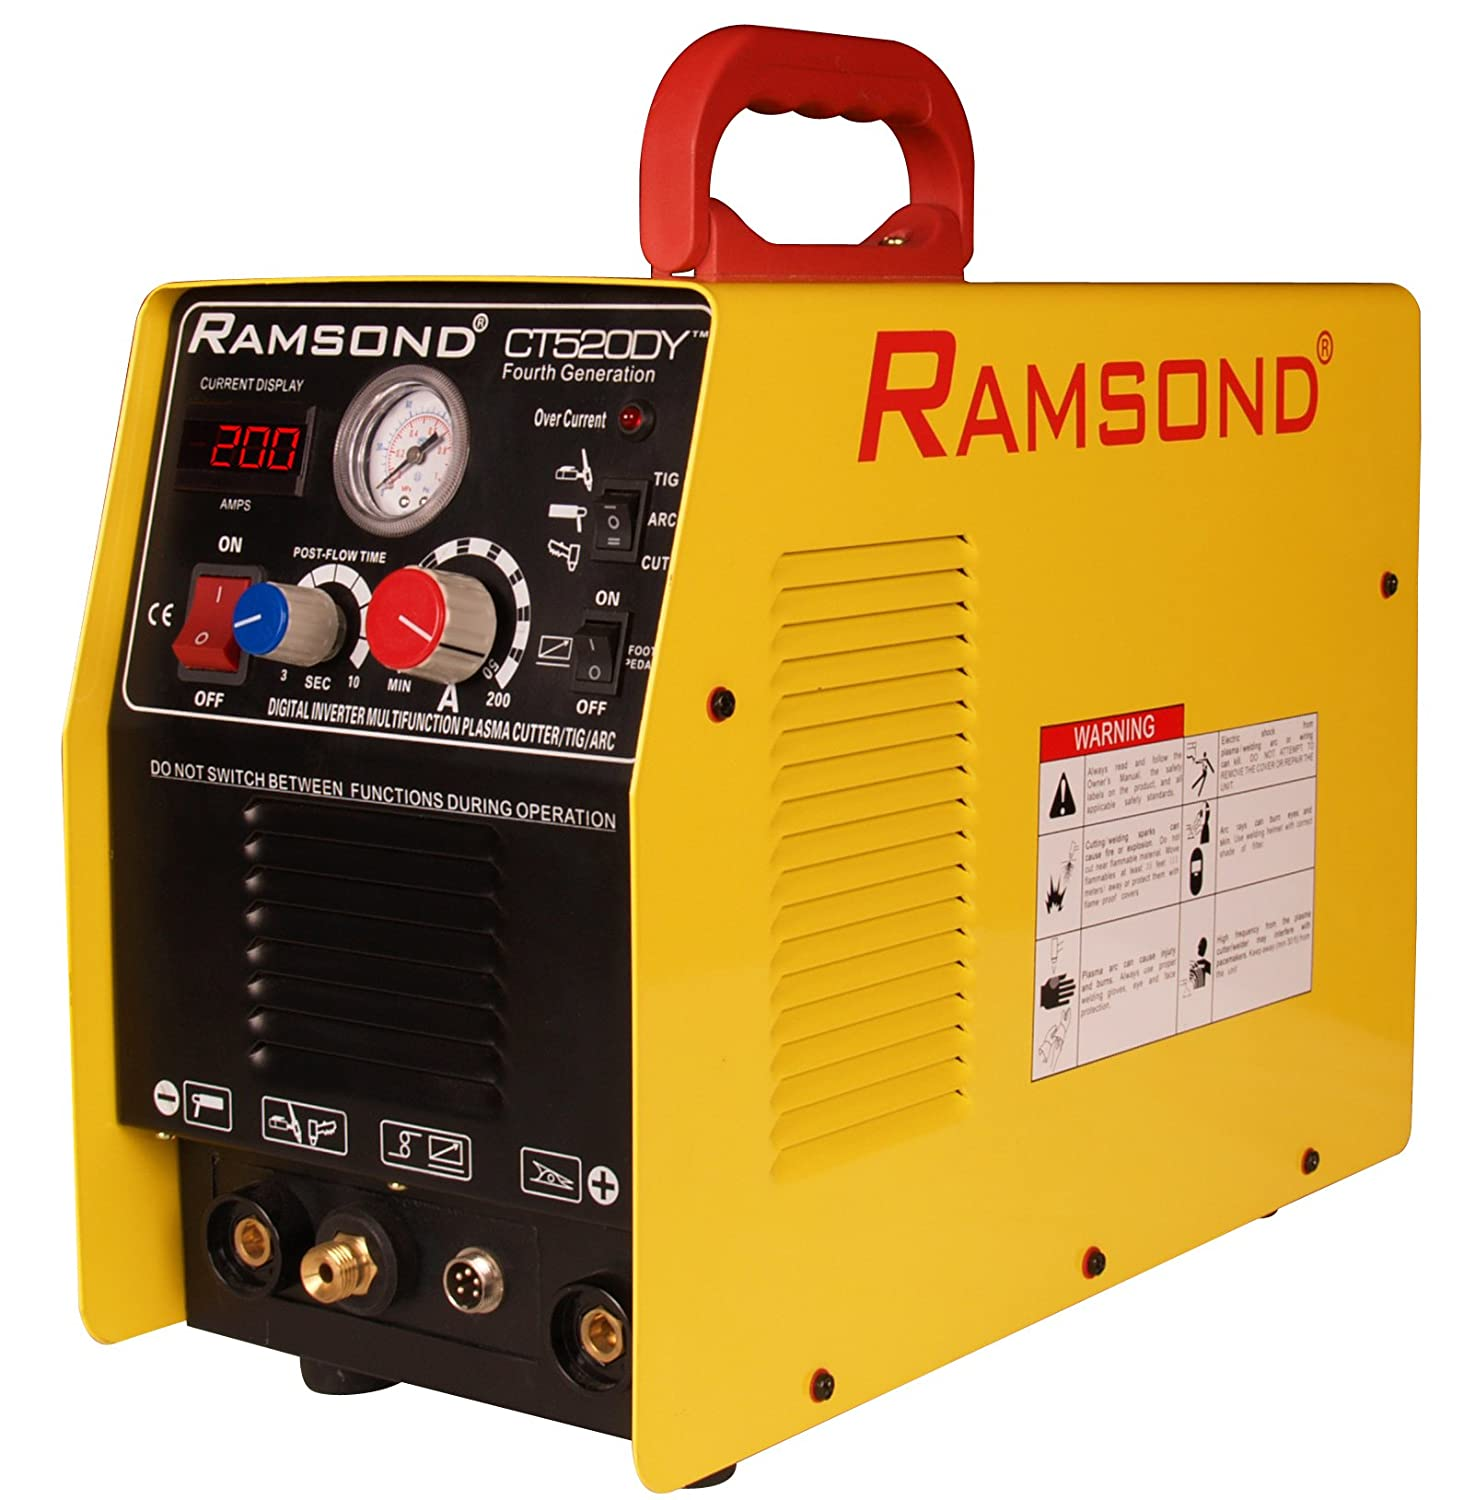 Inverter Welding Pcb Board Cutting Machine Circuit Industry Ramsond Ct 520dy 3 In 1 Multifunction Digital Plasma Cutter Tig Welder Arc Mma Dual Voltage 110 220v Frequency 50 60hz Rebar